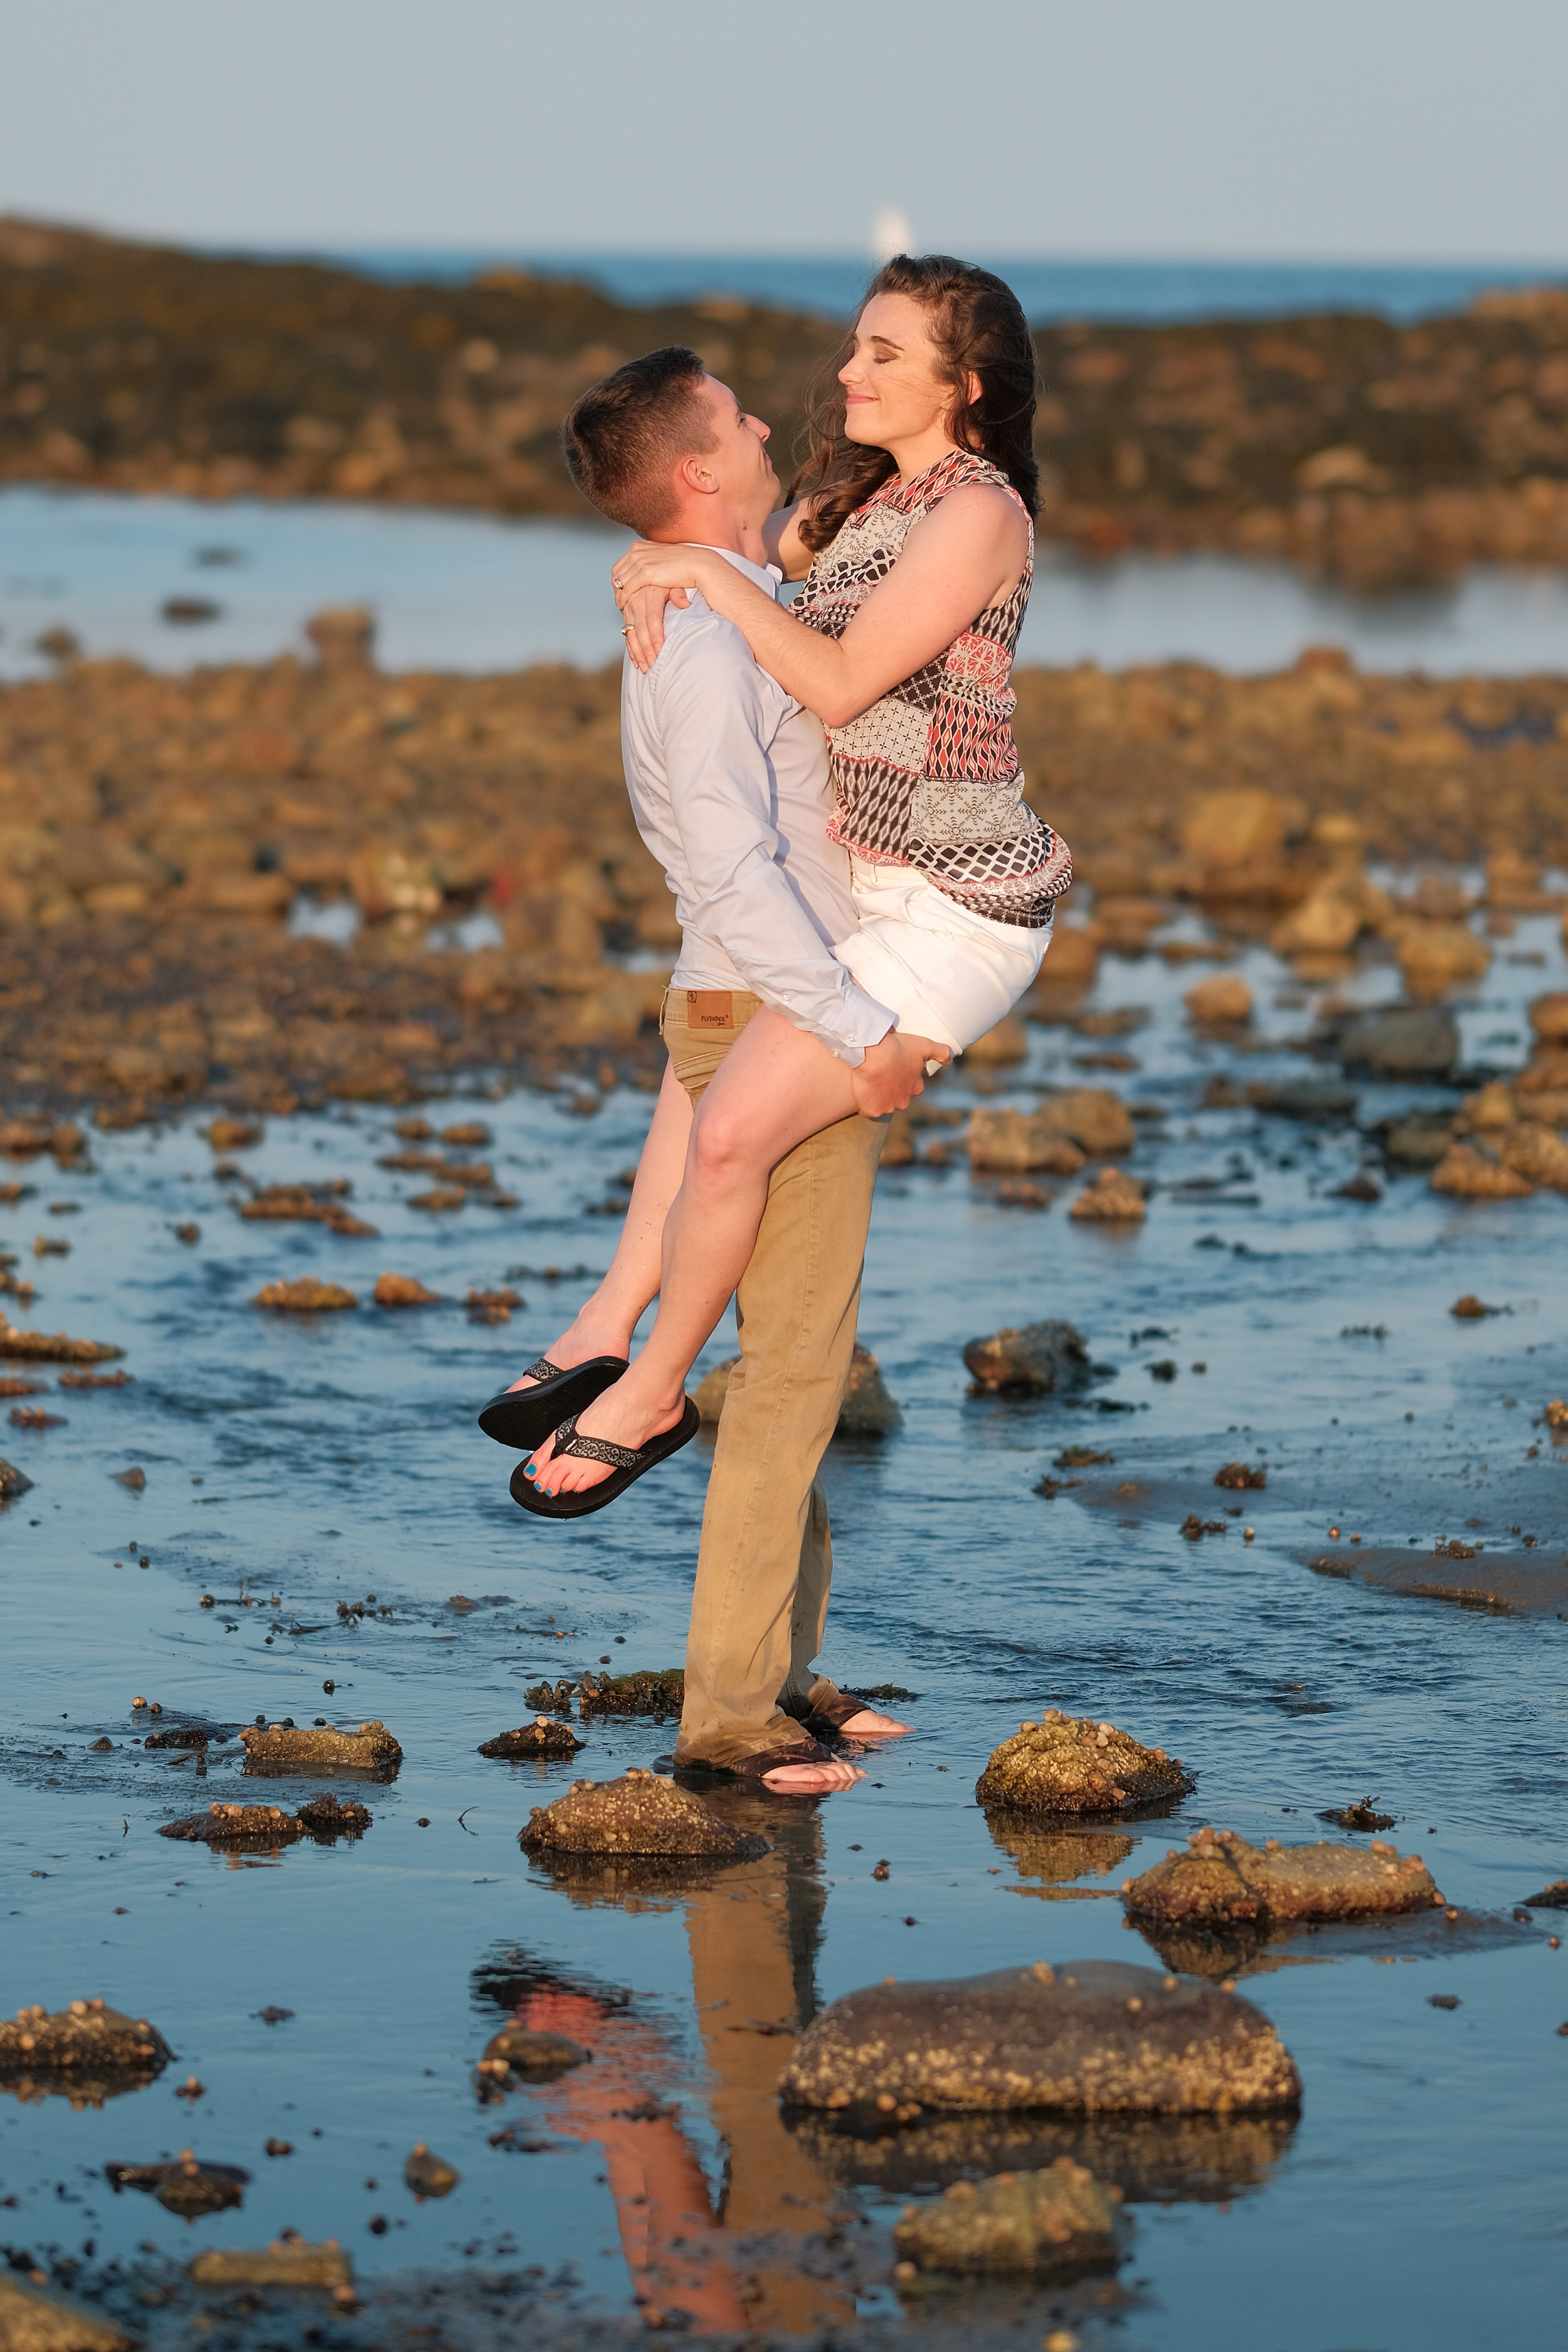 Periwinkle-Cove-Engagement-Photography-227.jpg